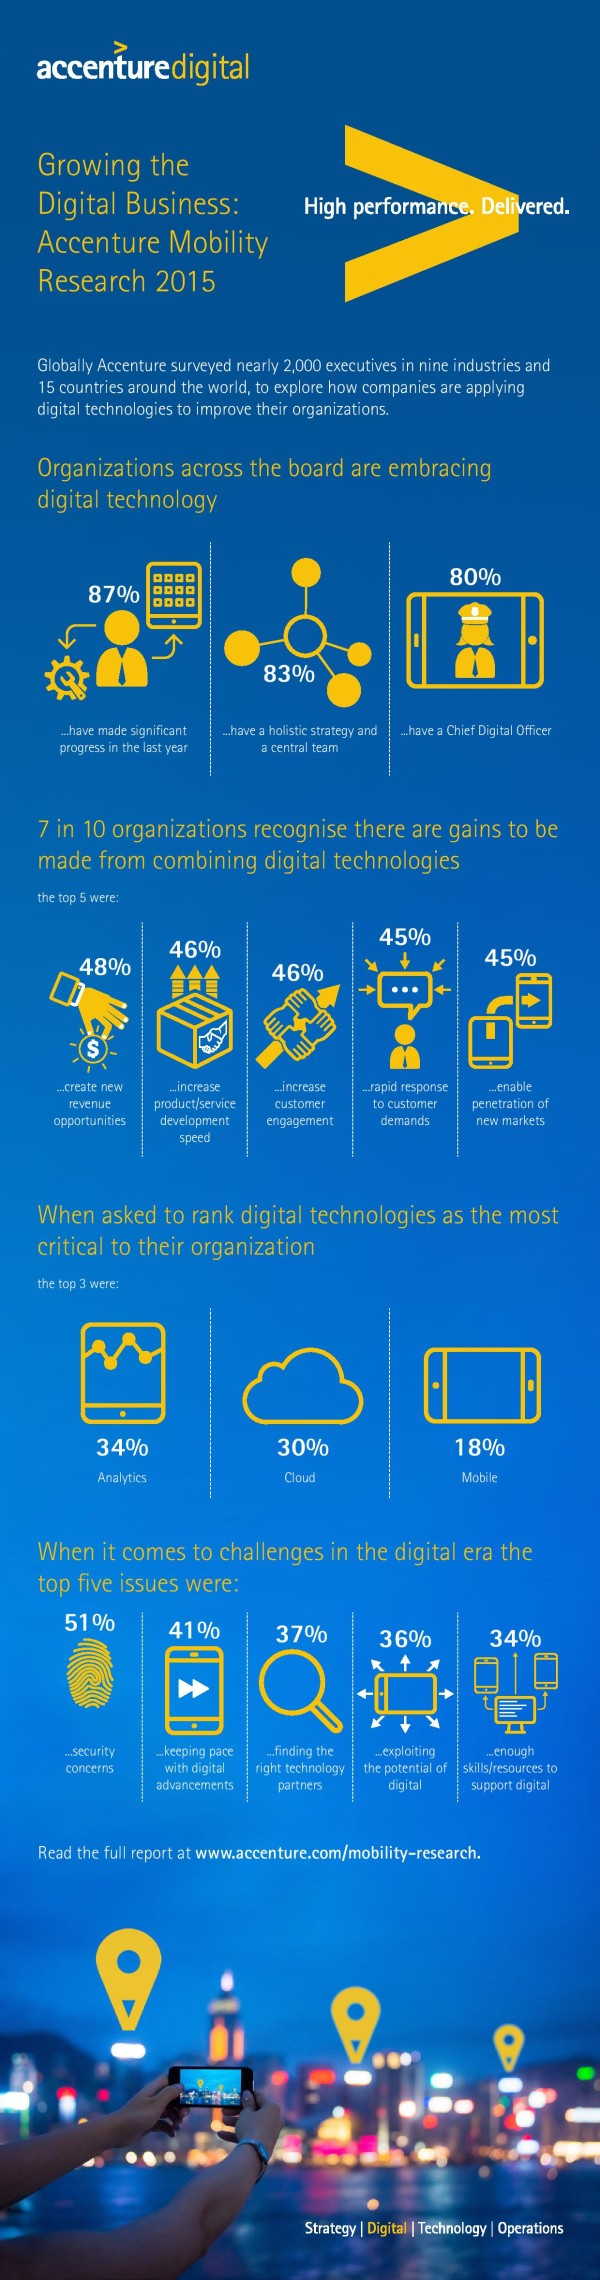 accenture-2015-mobility-research-infographic-page-001